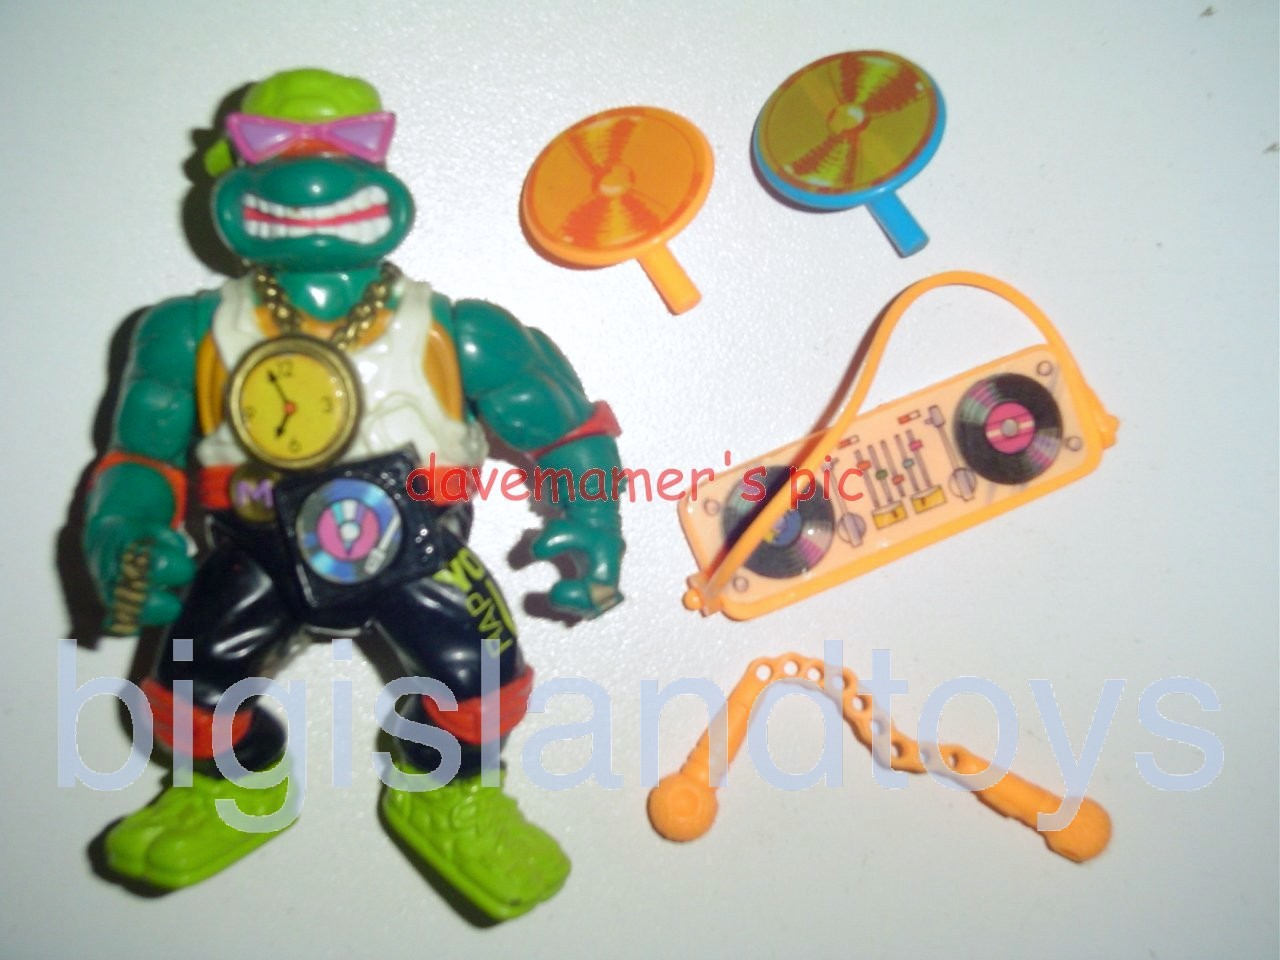 Teenage Mutant Ninja Turtles 1991 Figures   Rappin Mike